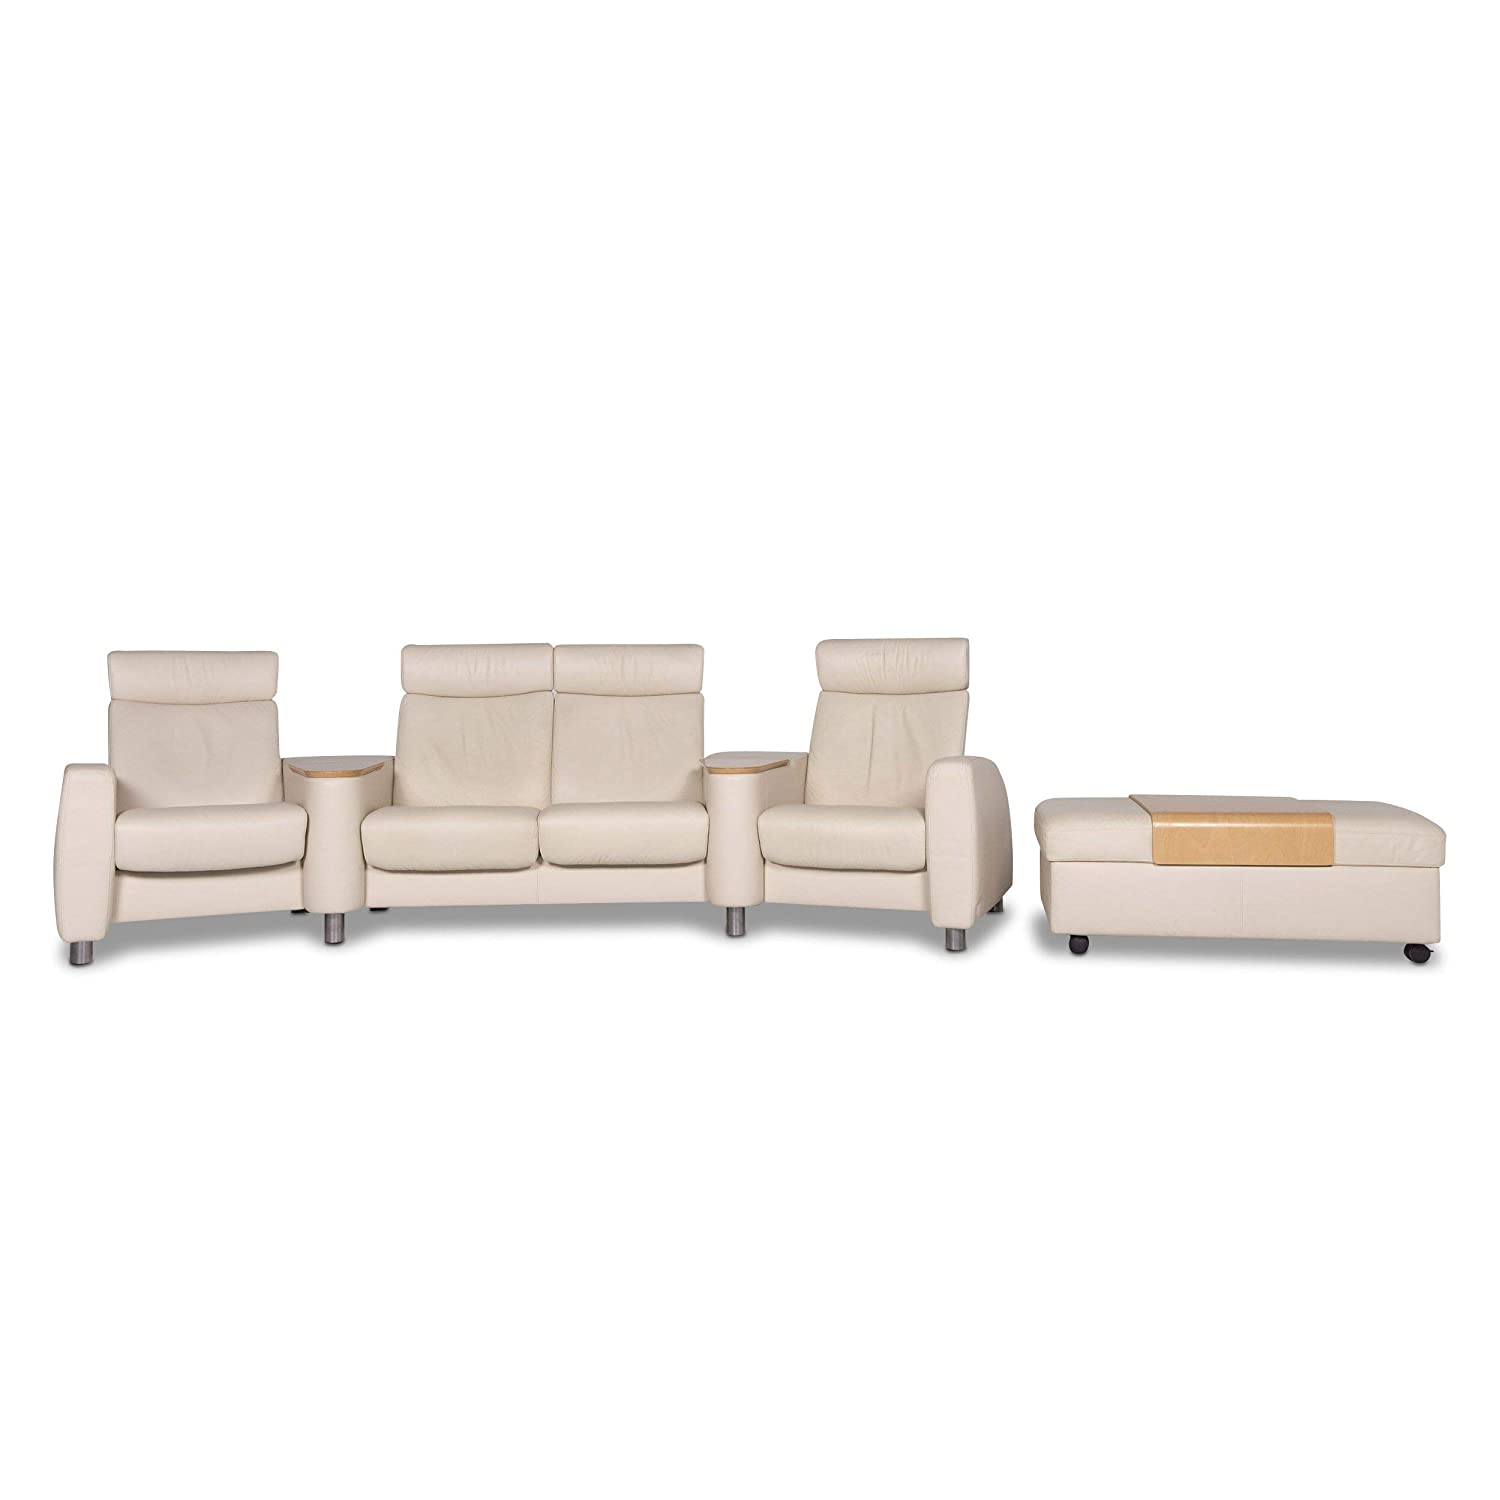 Stressless Arion Designer Leather Sofa Set Beige 1x Four ...